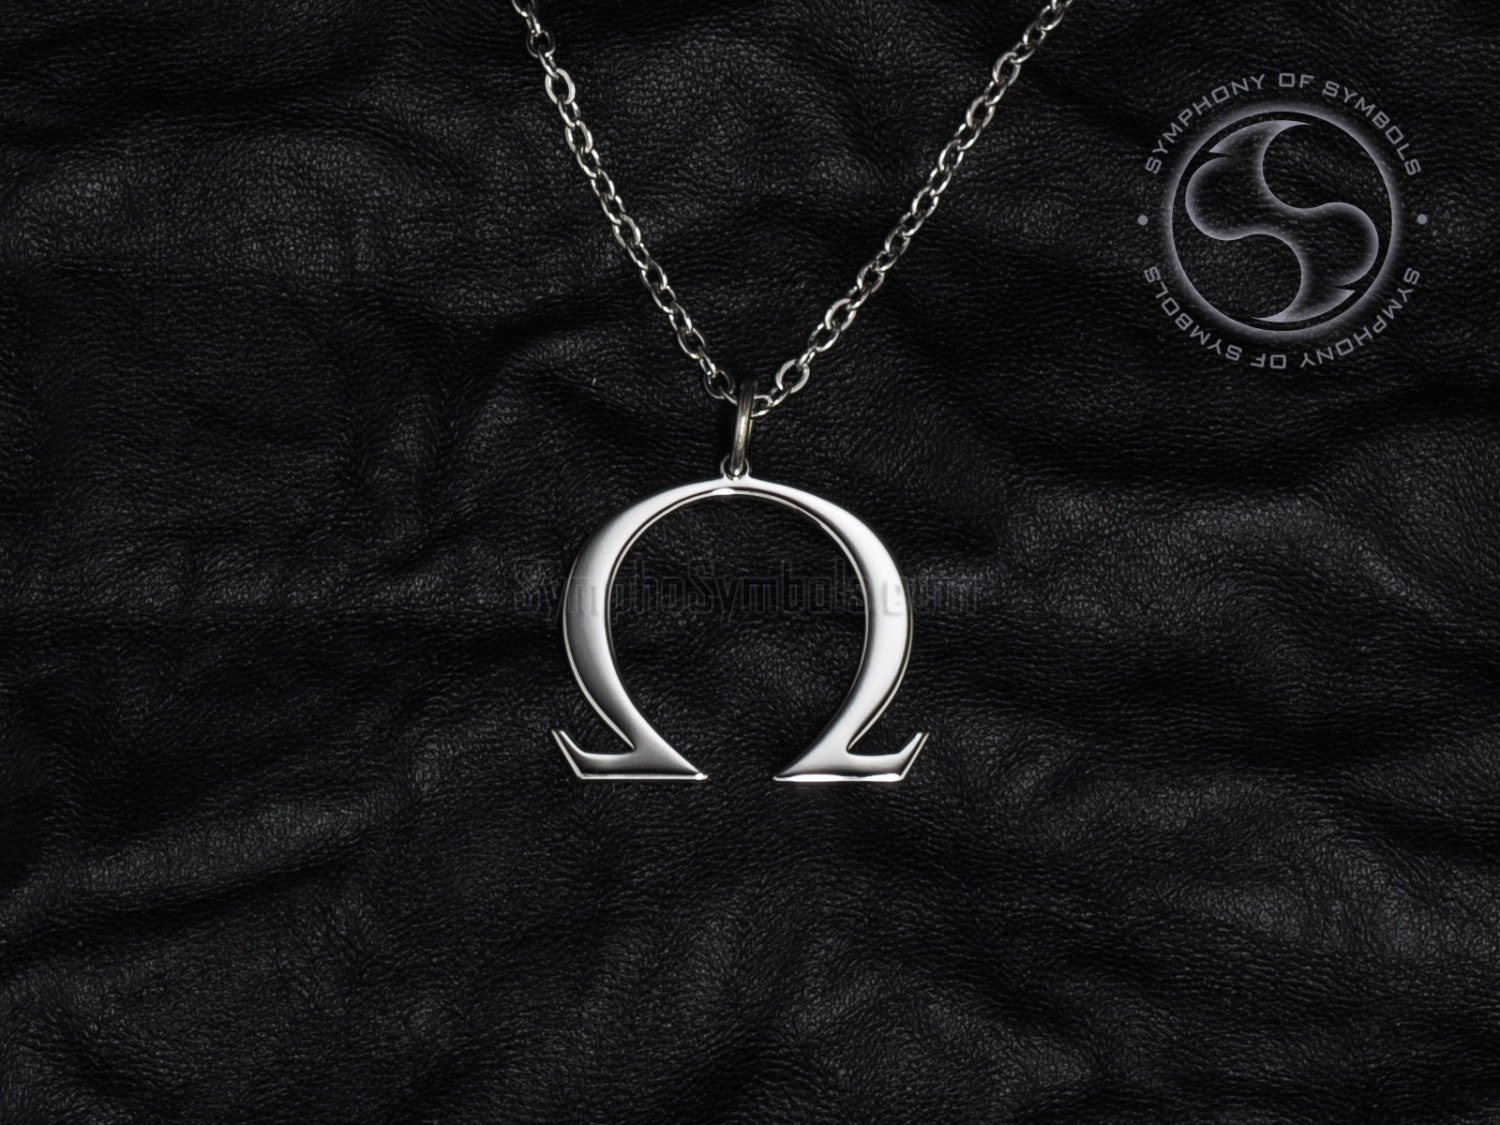 stainless pendant steel jewelry jciu necklace il symbol fullxfull zoom listing greek capital omega